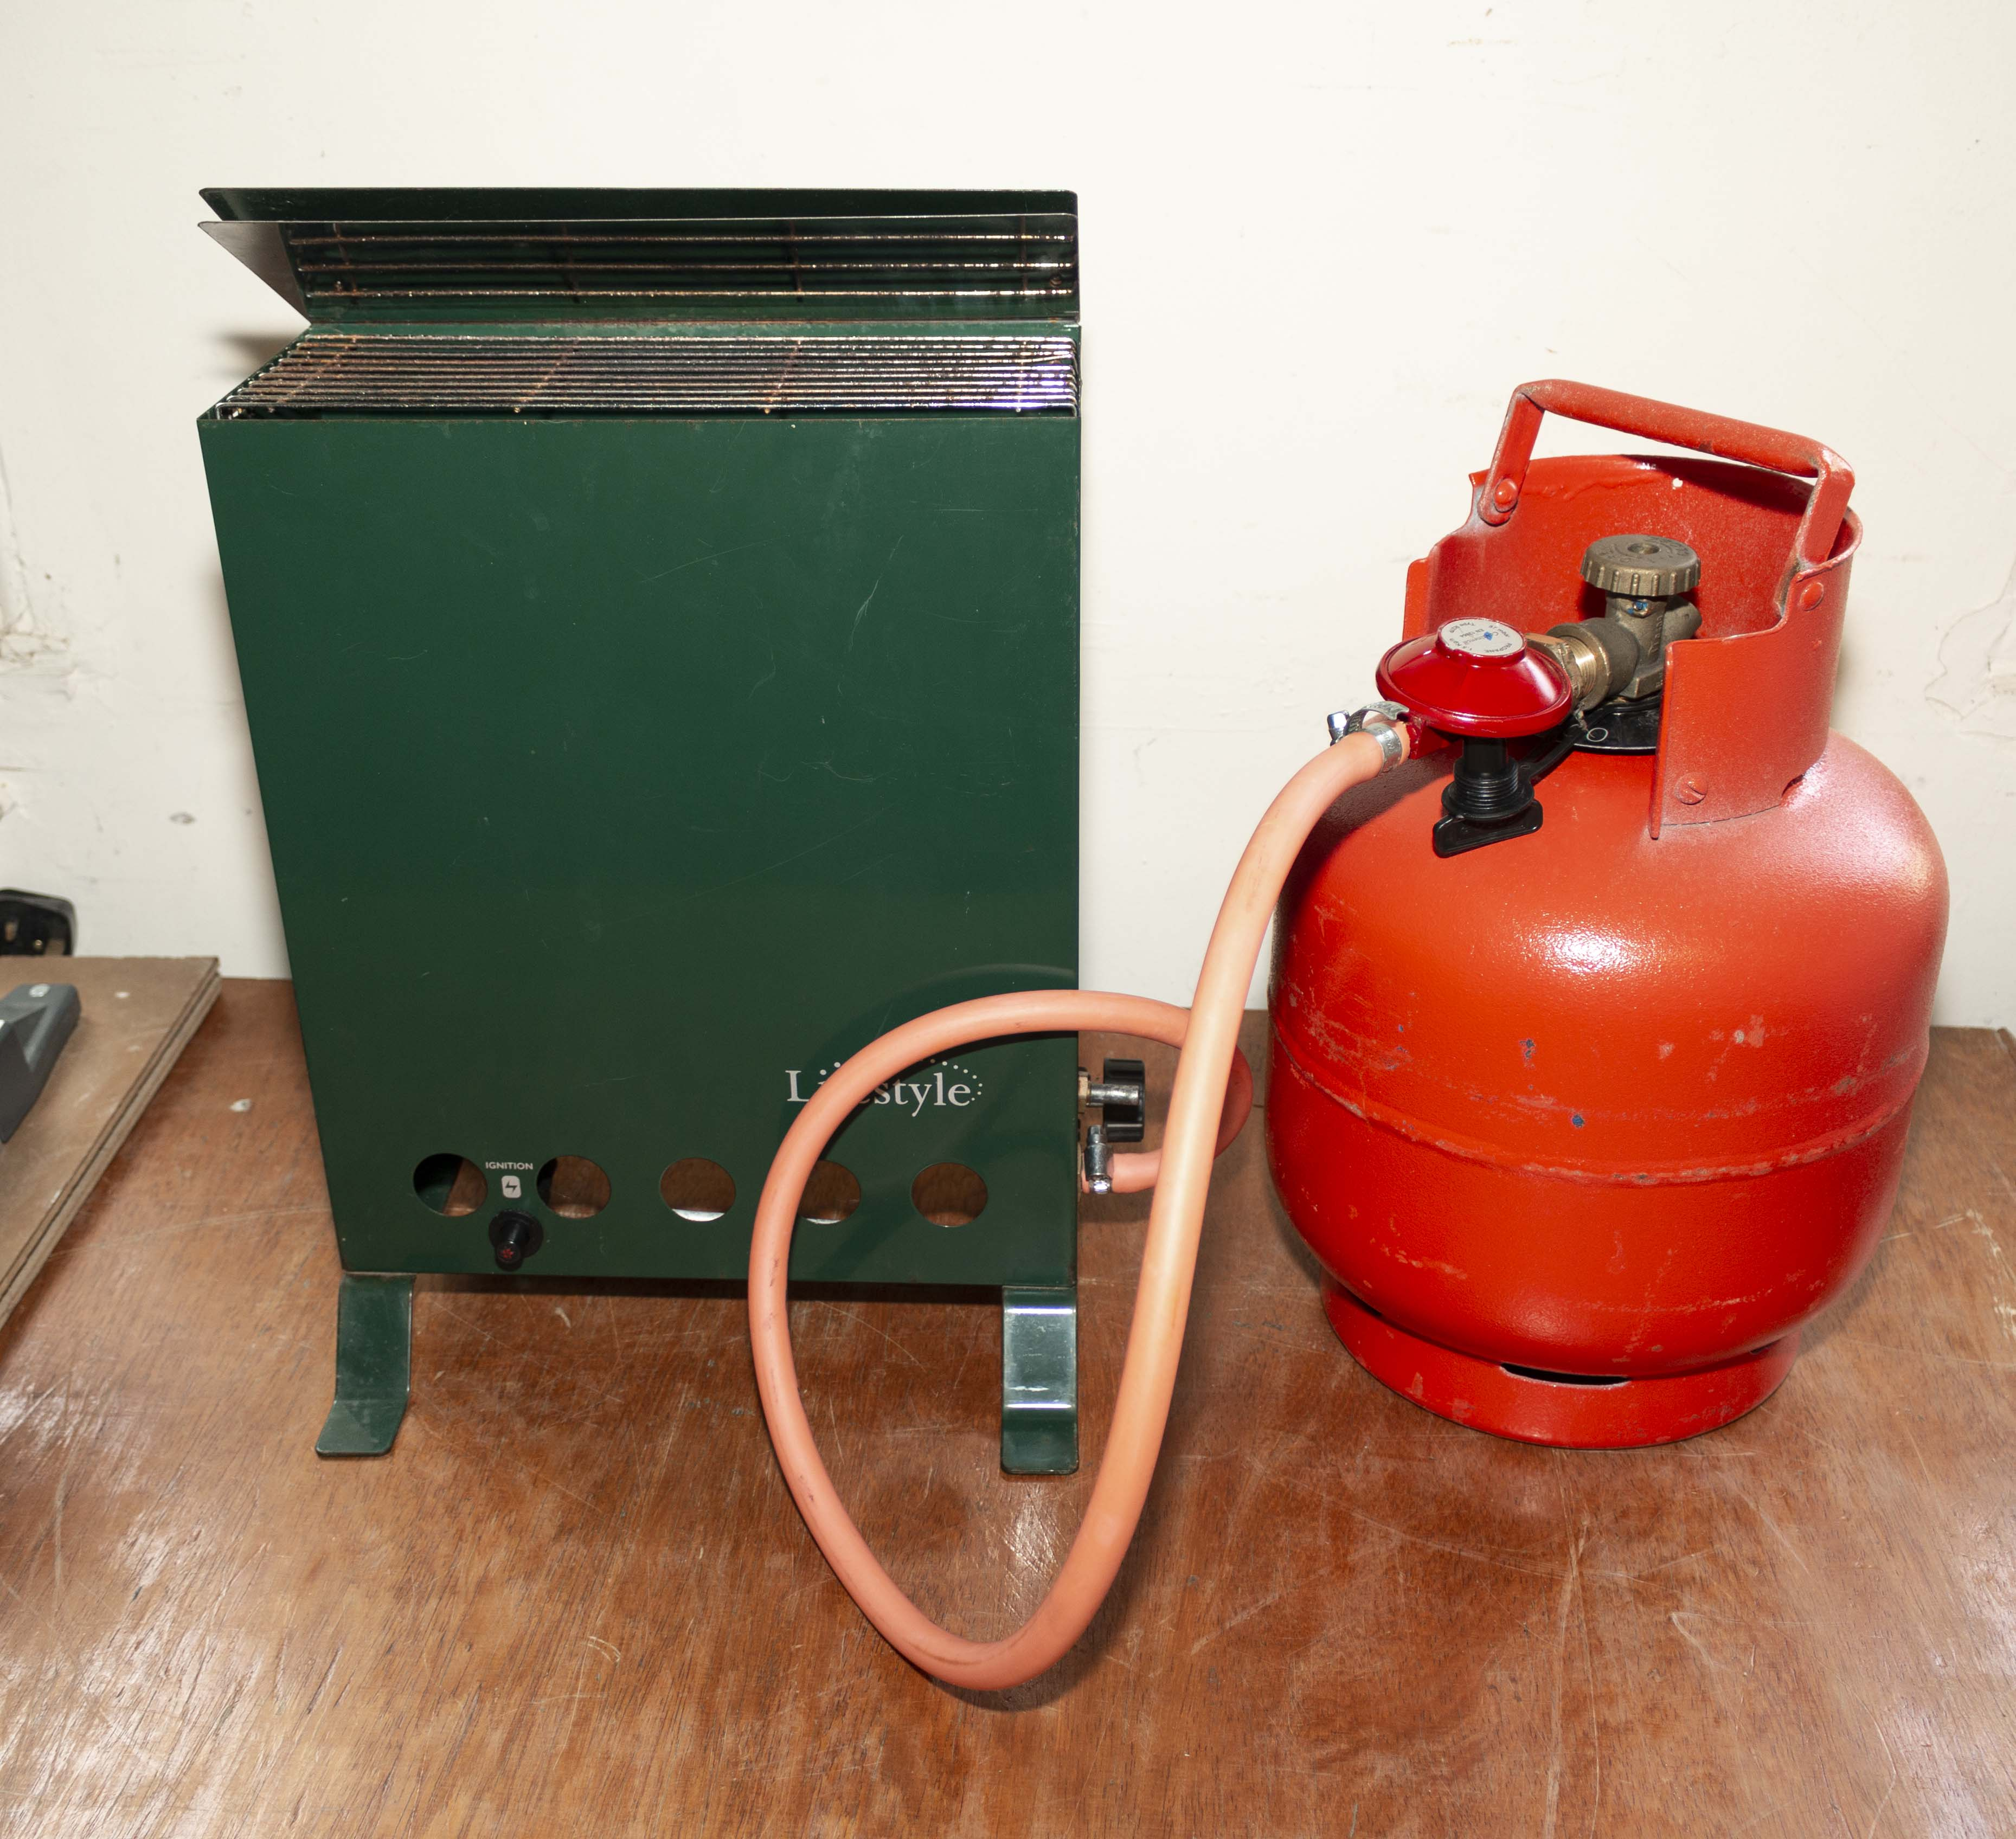 Lot 12 - A Lifestyle greenhouse heater together with a propane gas cylinder